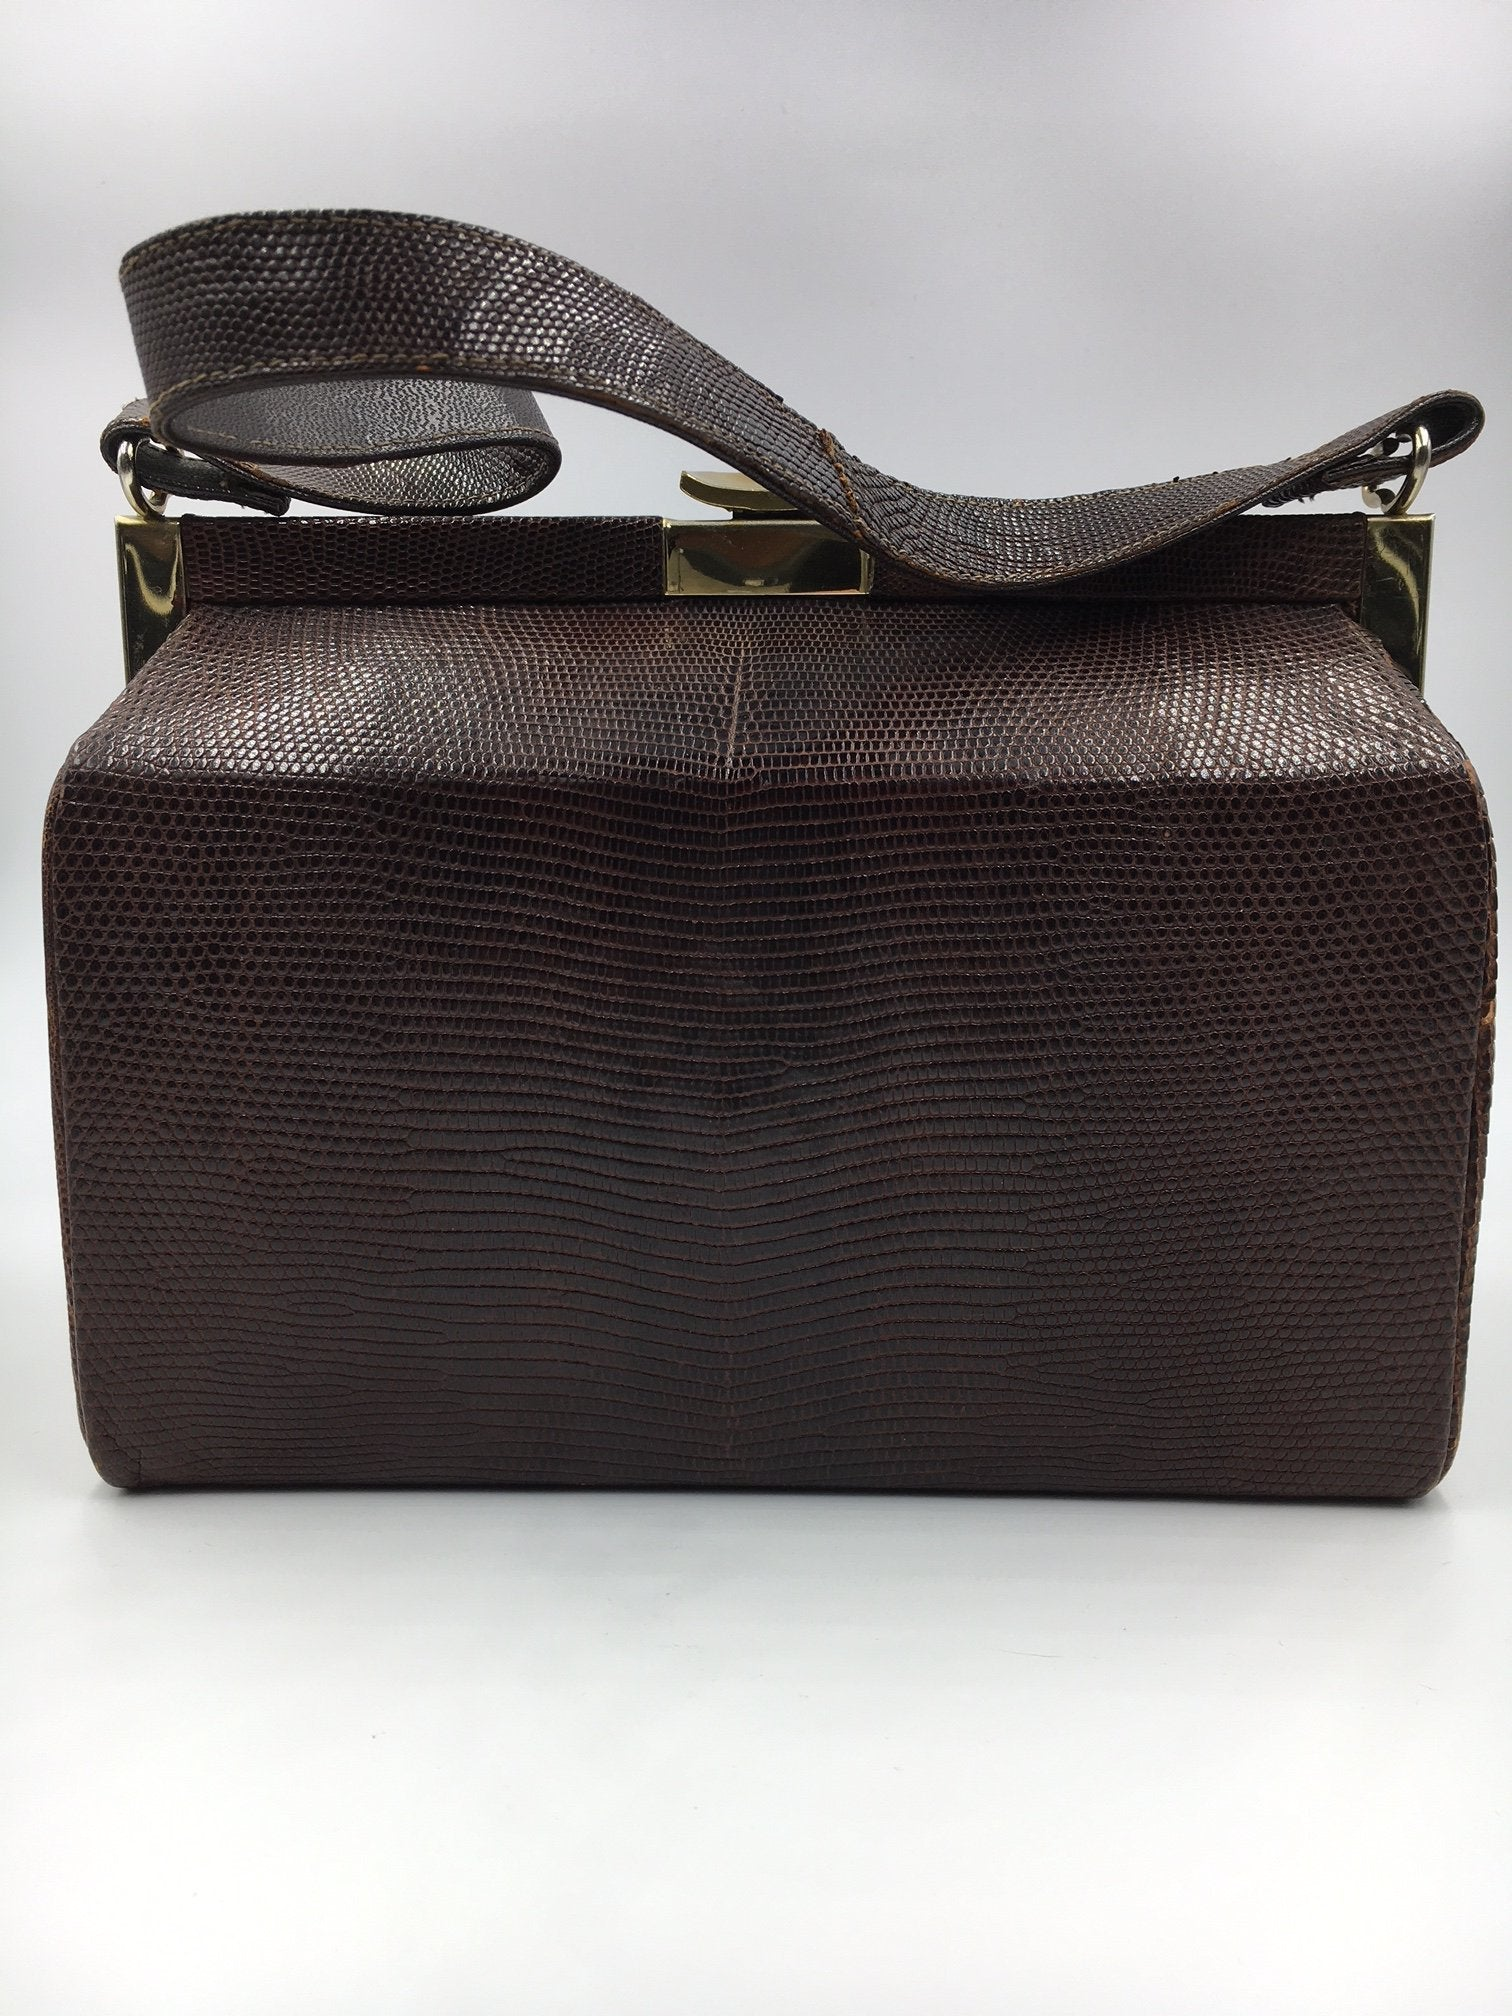 Vintage 1950's Handbag, SALE, SOLD